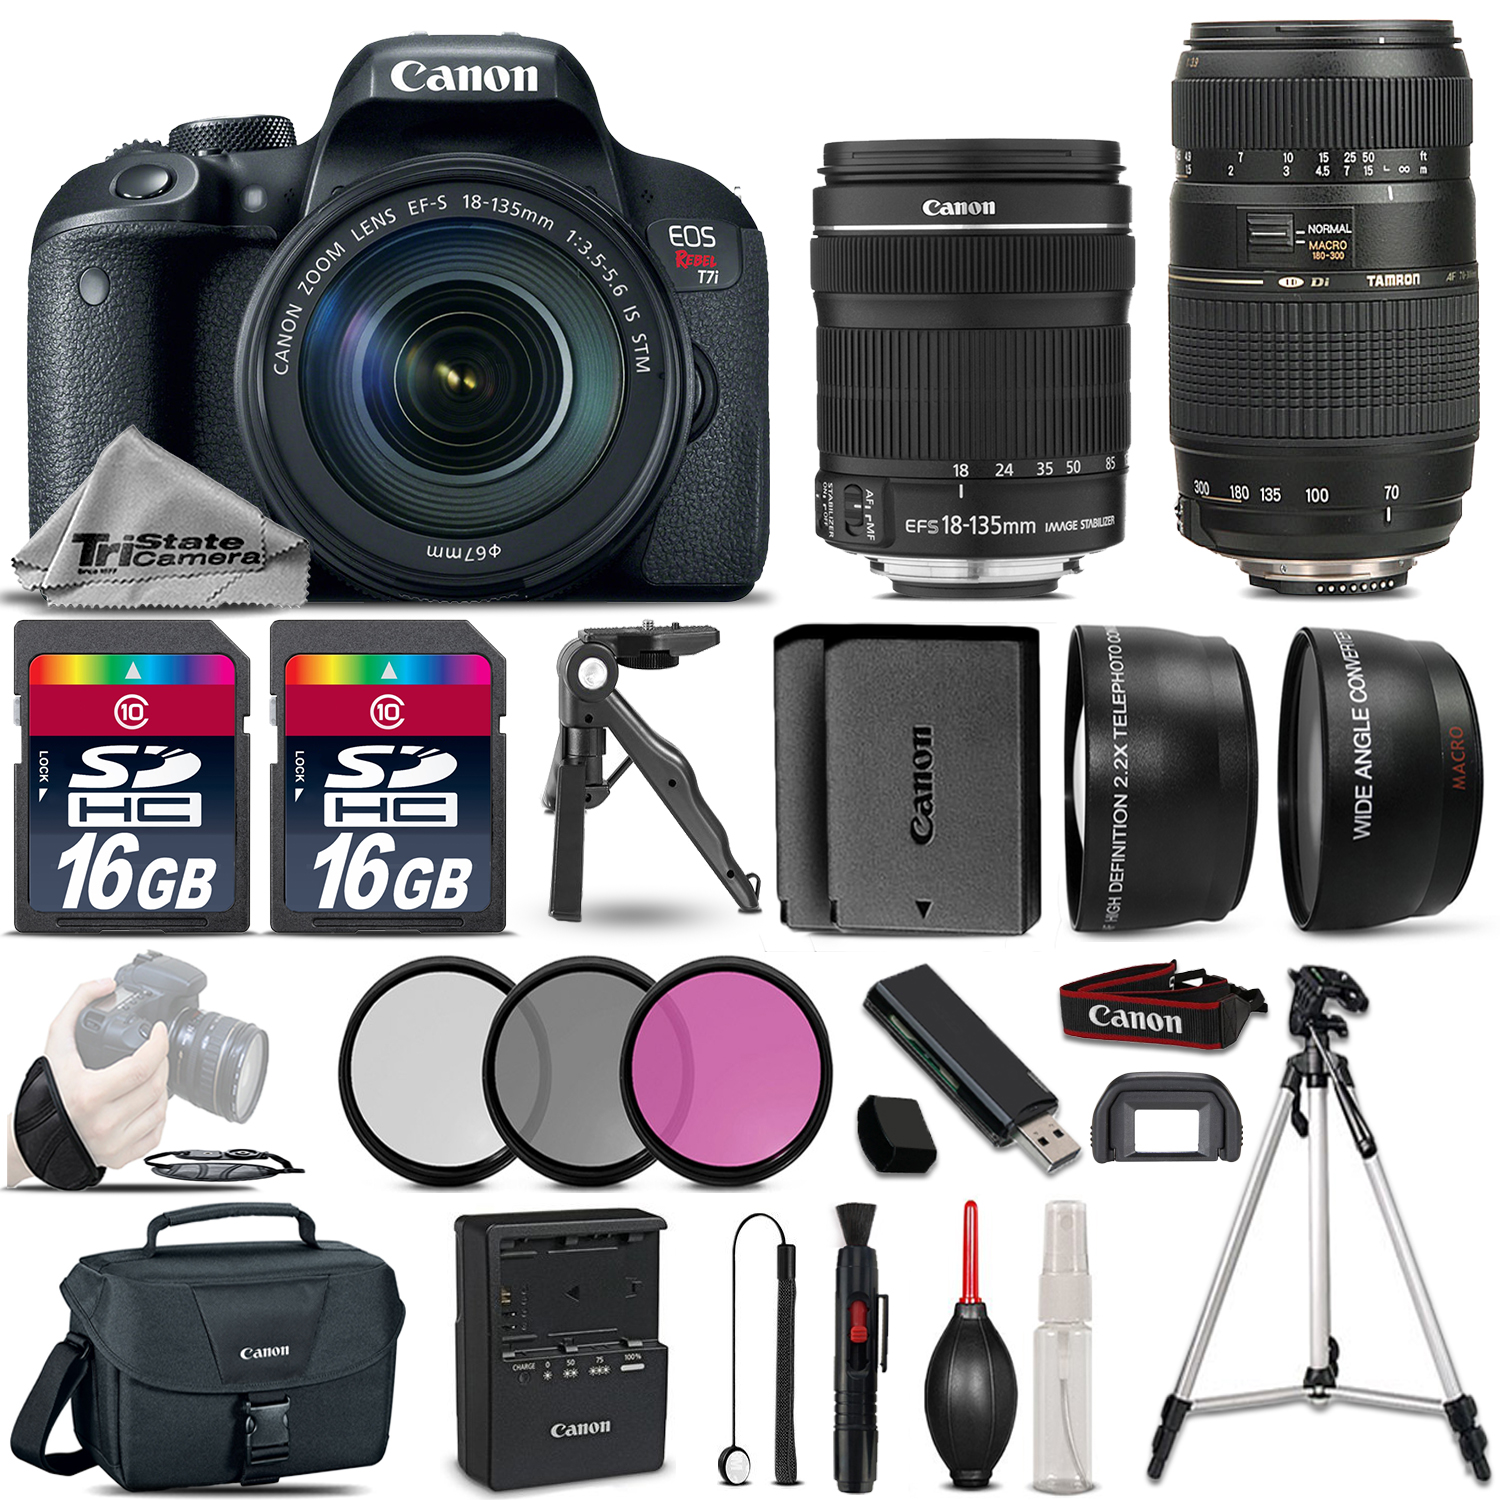 EOS Rebel T7i DSLR Camera w/ 18-135mm STM and 70-300mm + Extra Battery *FREE SHIPPING*